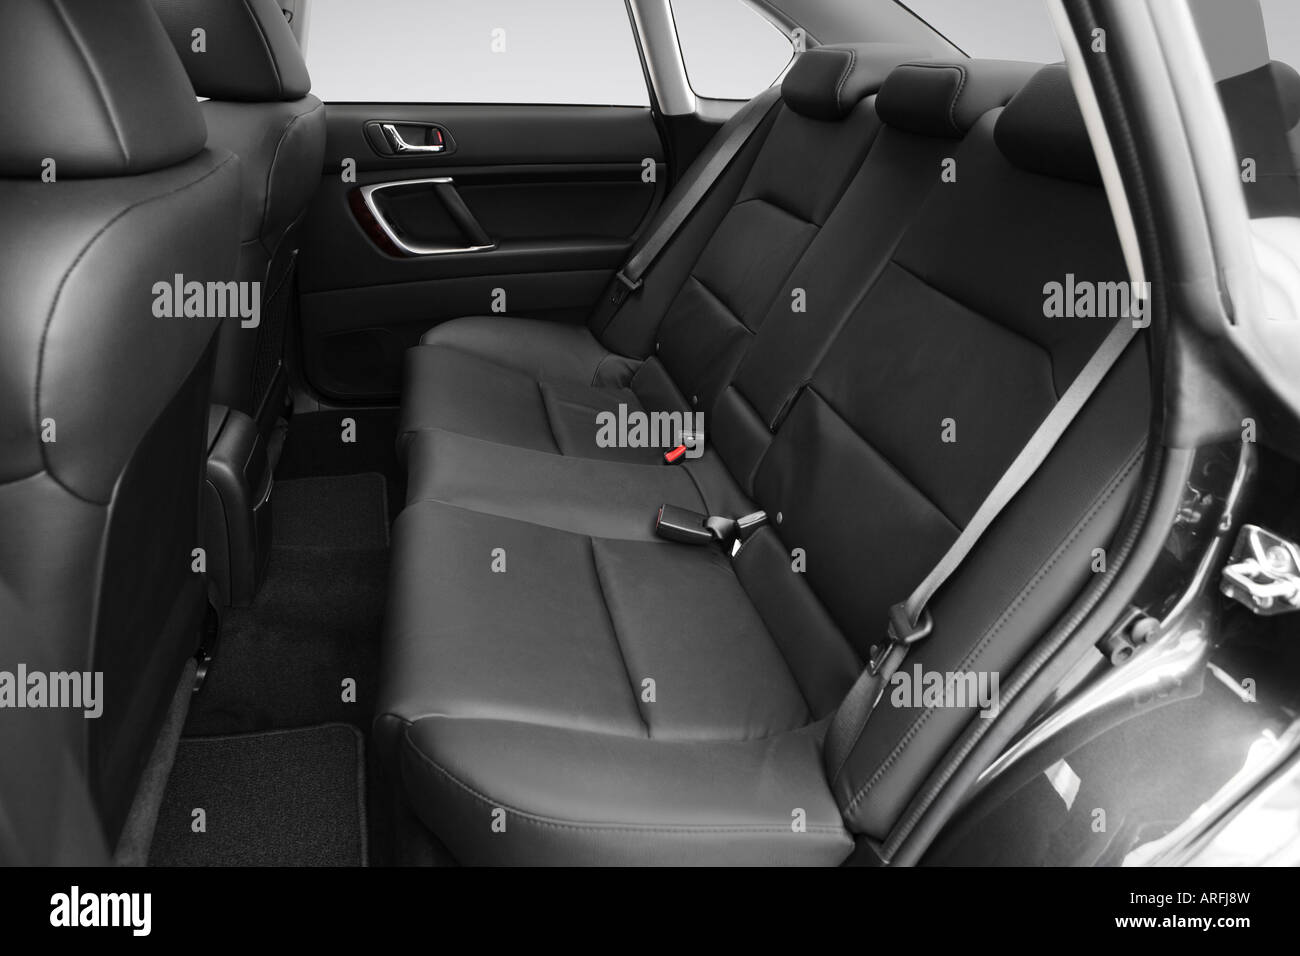 2008 subaru legacy 2.5i limited in gray - rear seats stock photo